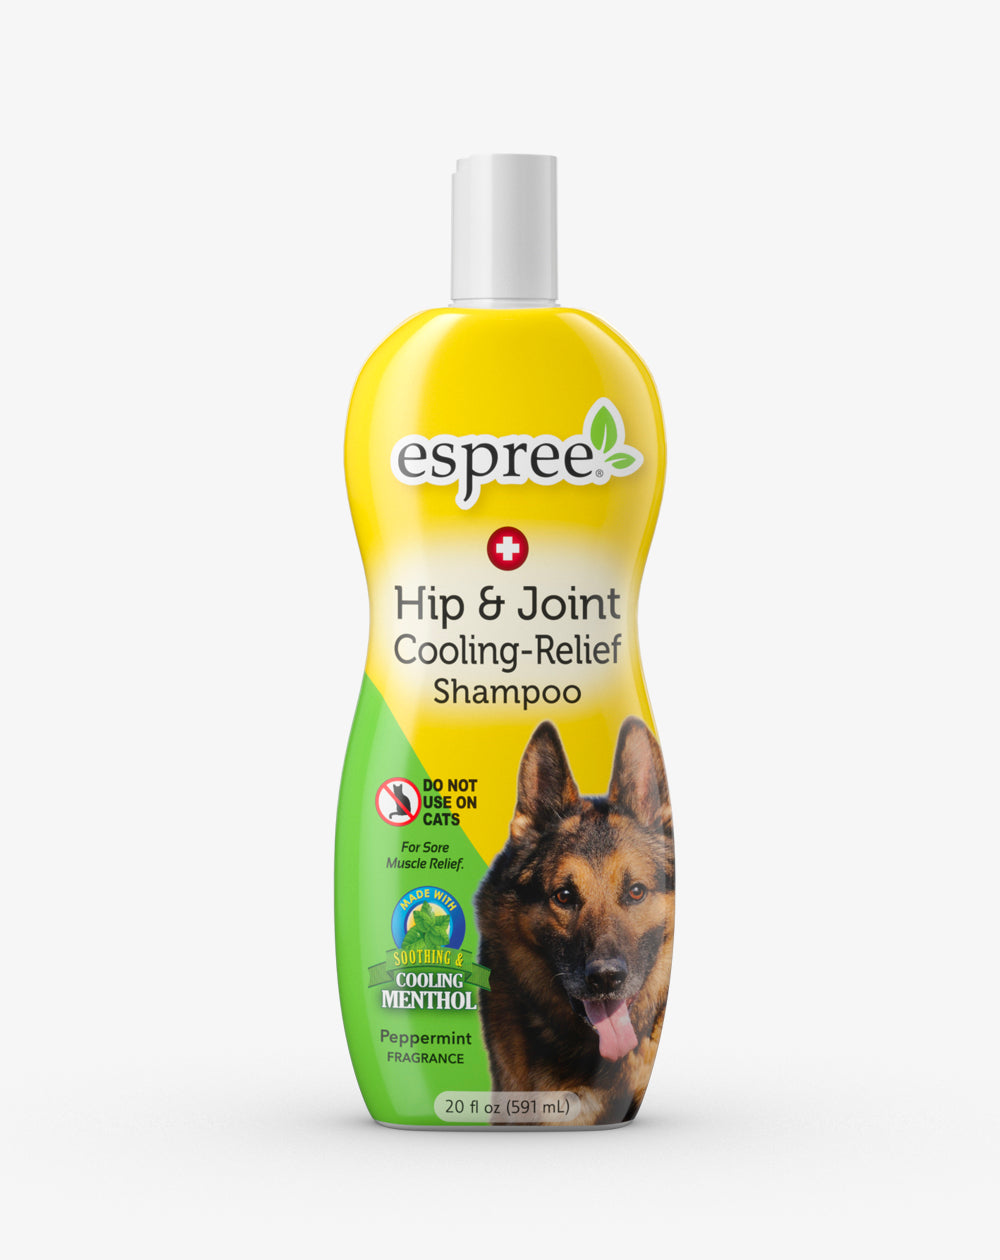 HIP & JOINT COOLING RELIEF SHAMPOO 20 oz